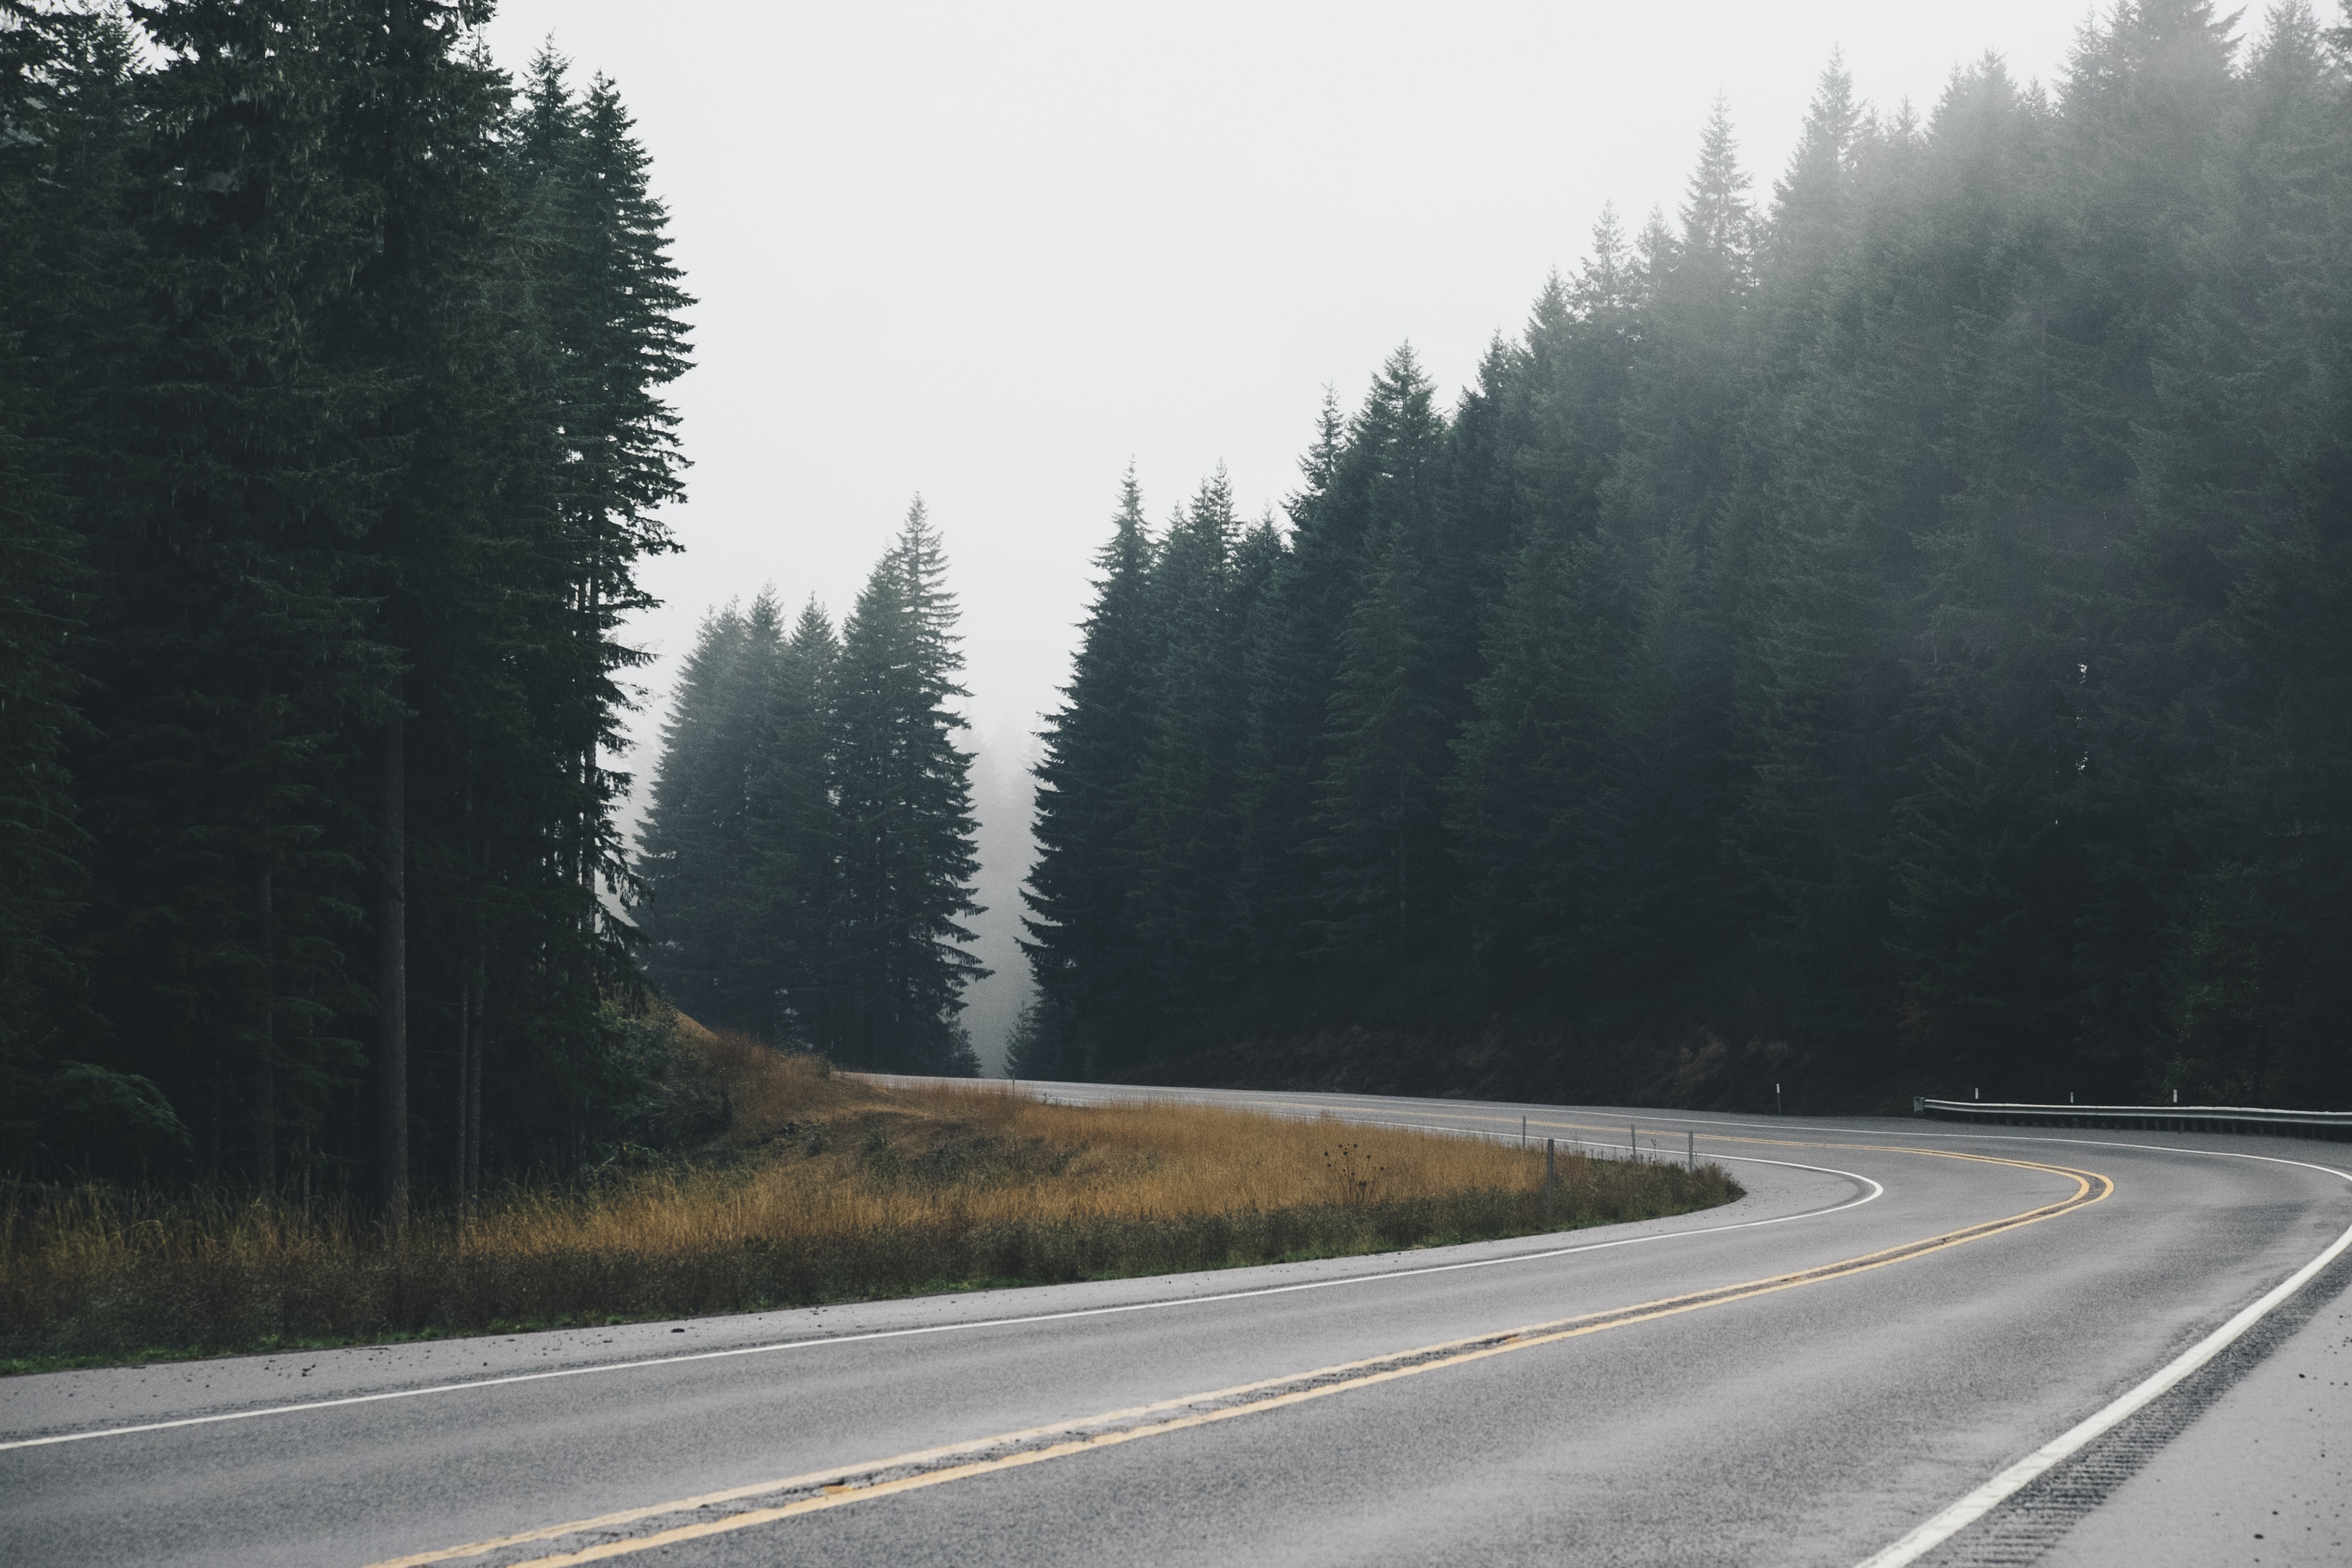 A bend in an asphalt road lined with tall coniferous trees